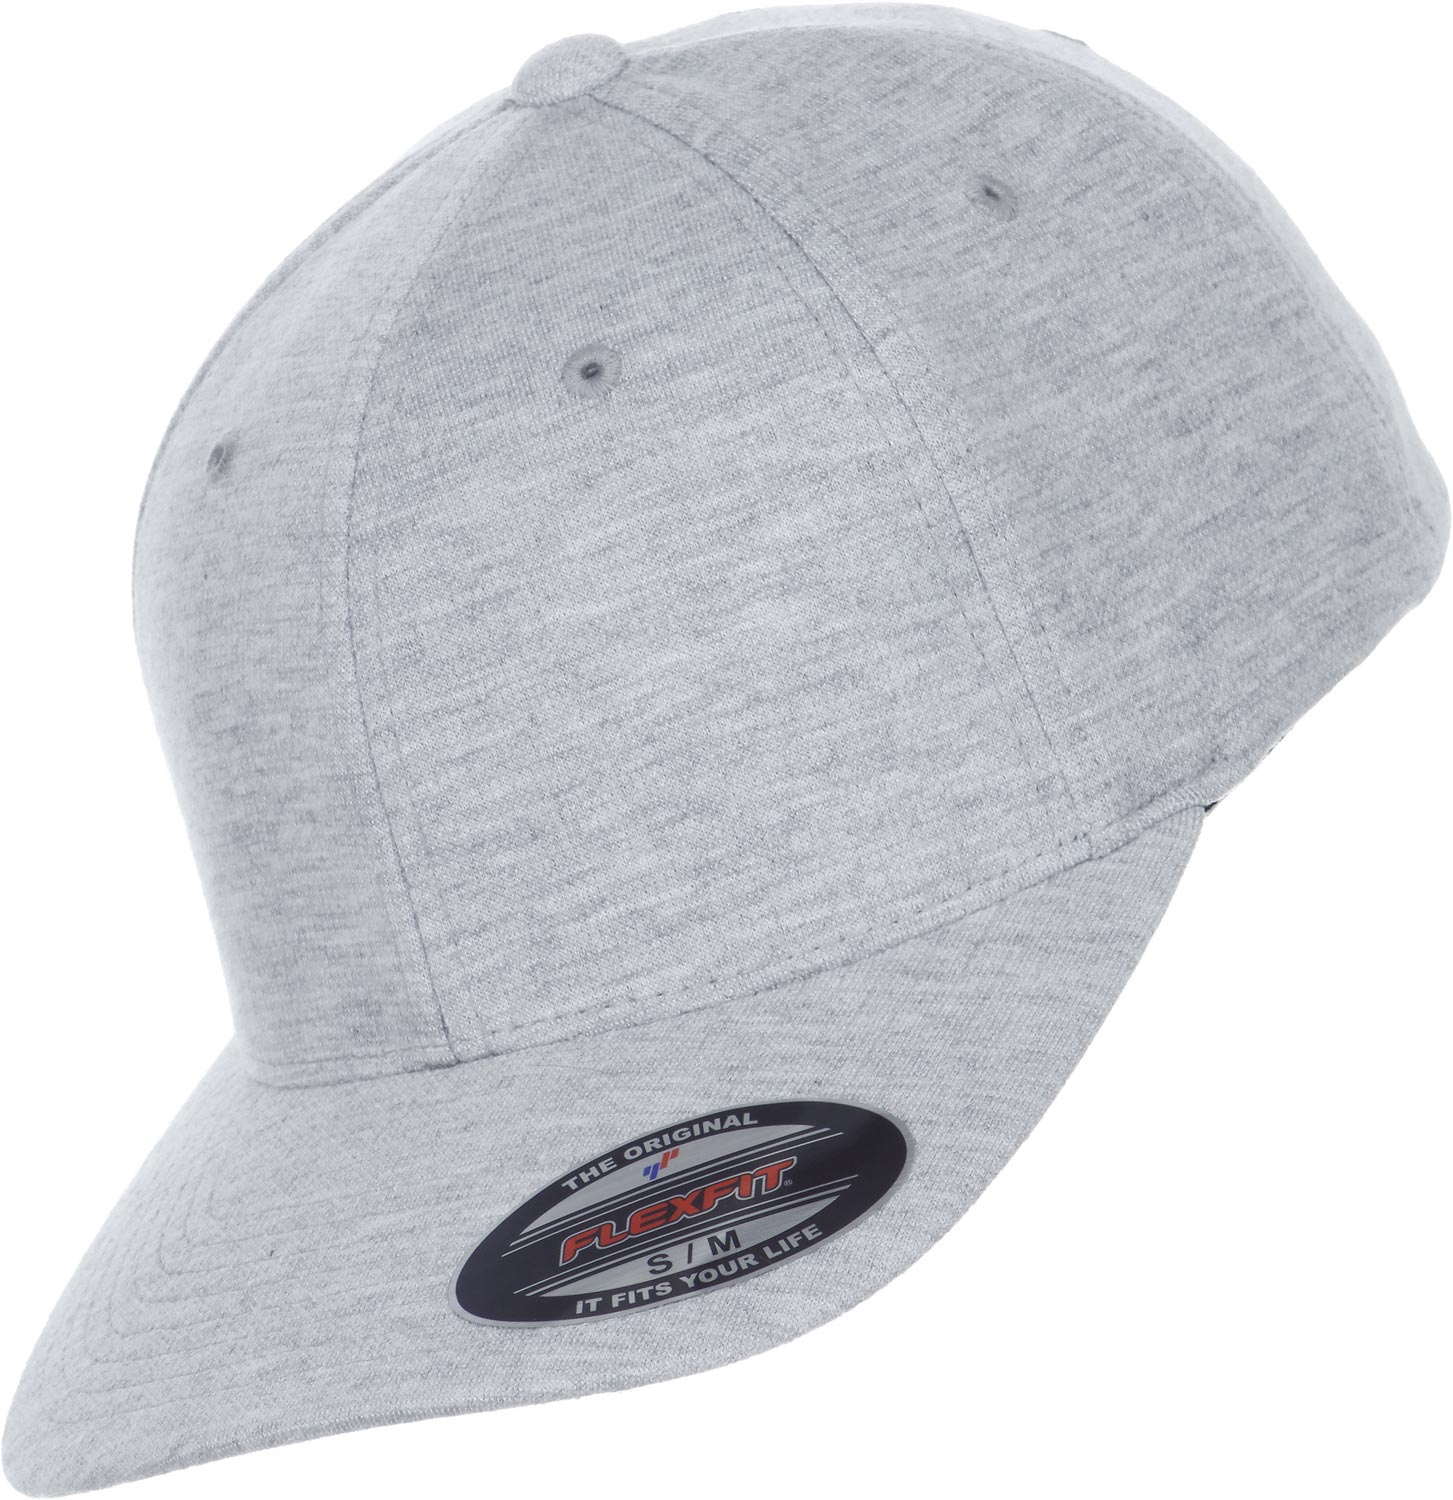 Yupoong Flexfit double jersey cap 6778 Embroidery, Print, Transfer